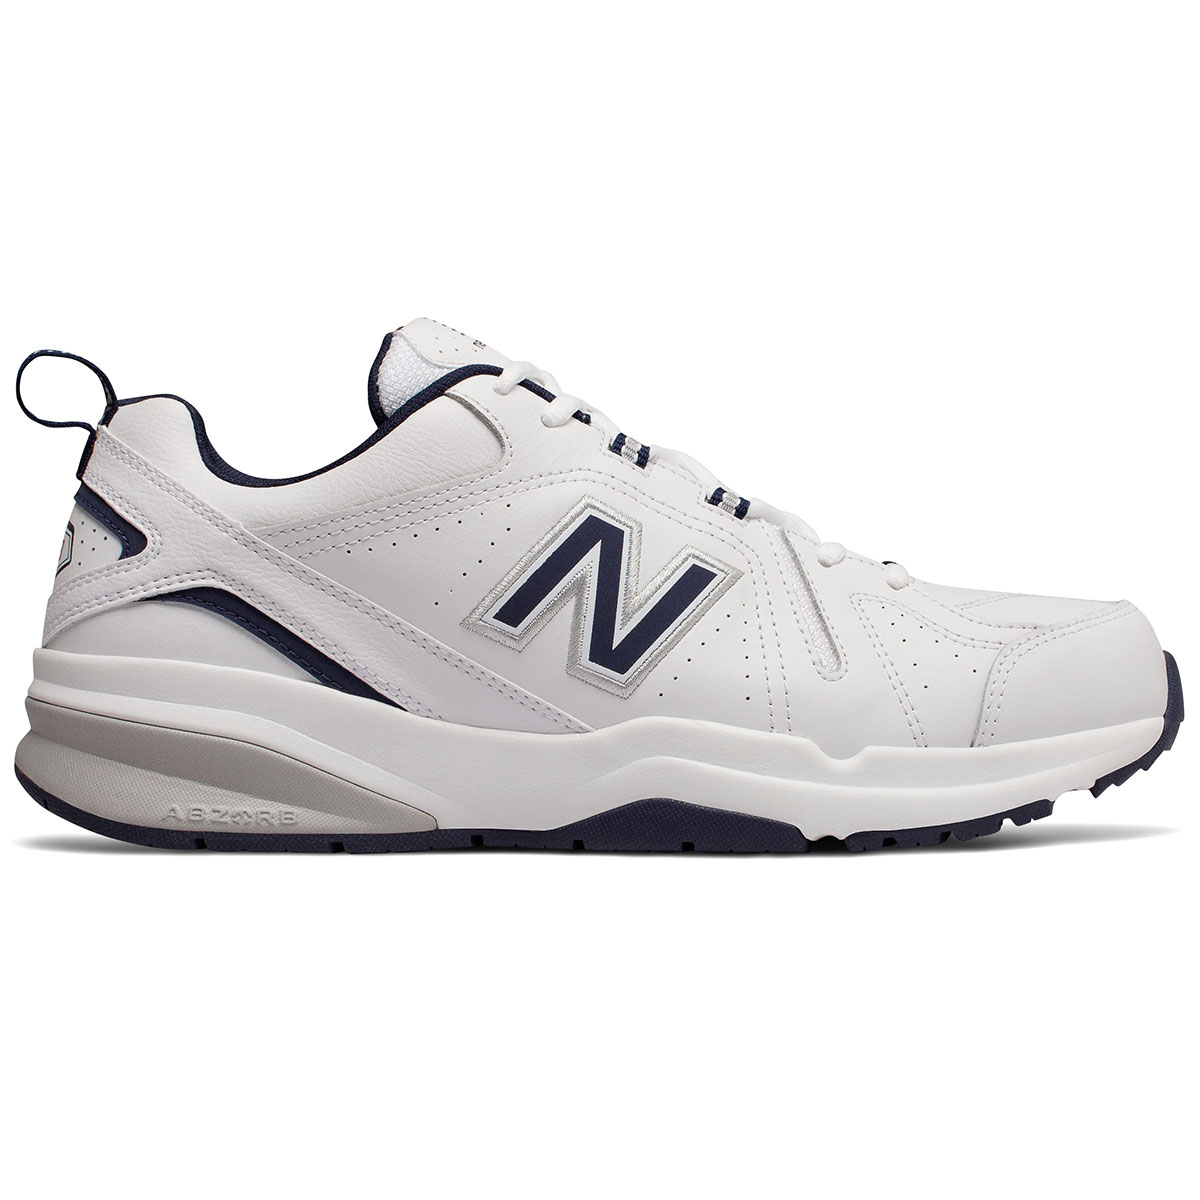 New Balance Men's 608V5 Training Shoes, Extra Wide - White, 10.5